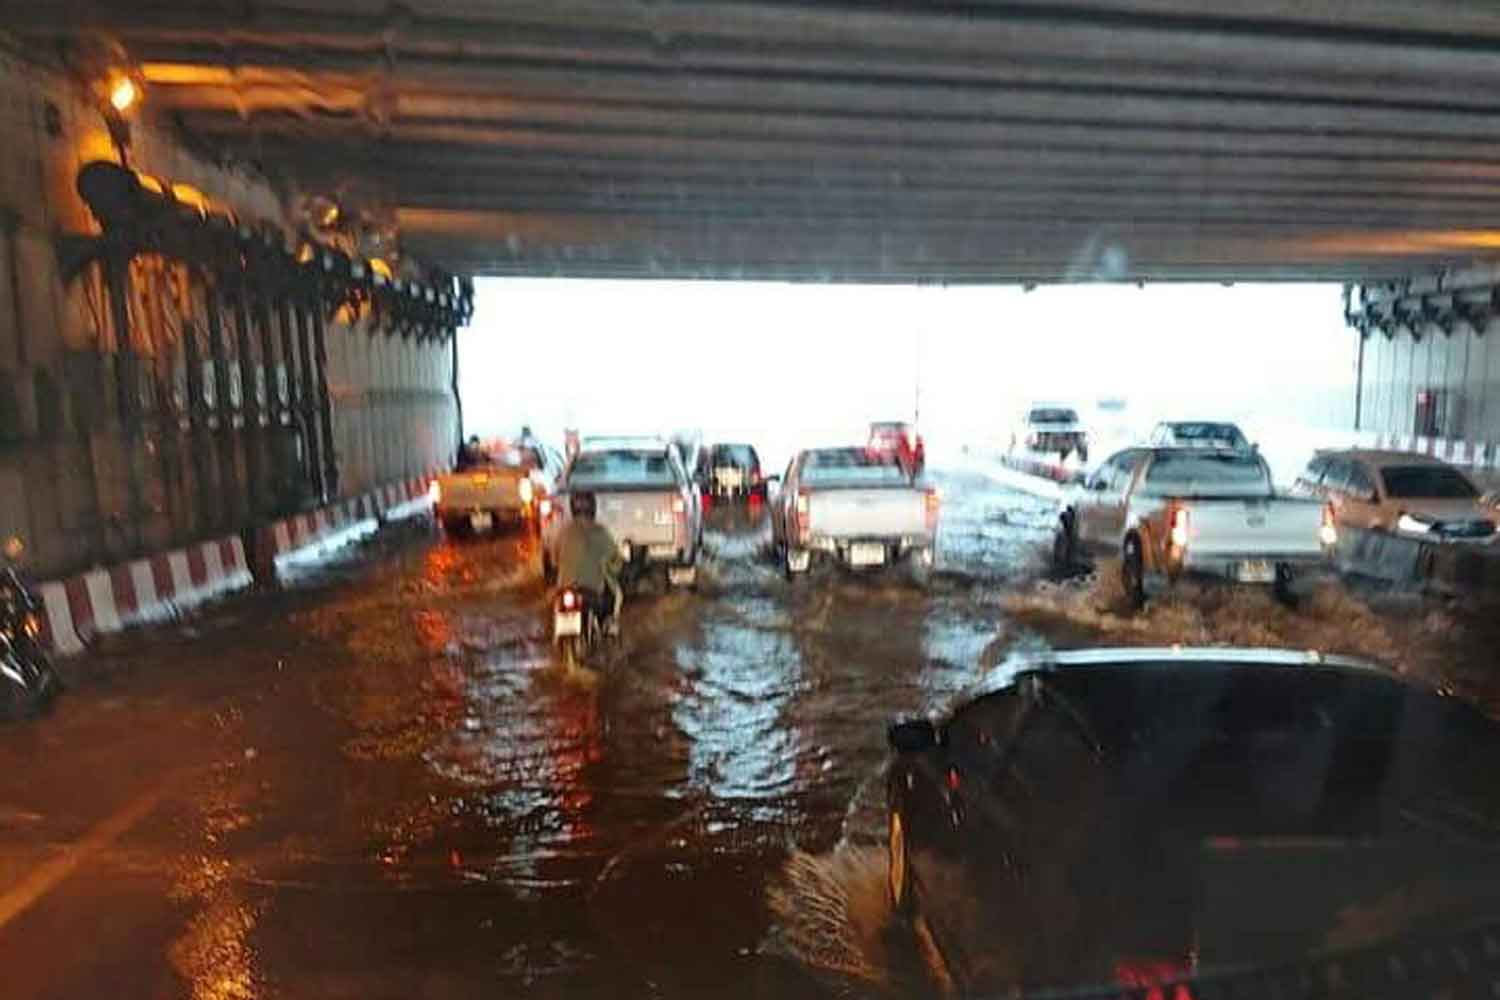 An underpass is flooded in Muang district of Chiang Mai province on Monday. (Photo by Panumet Tanraksa).